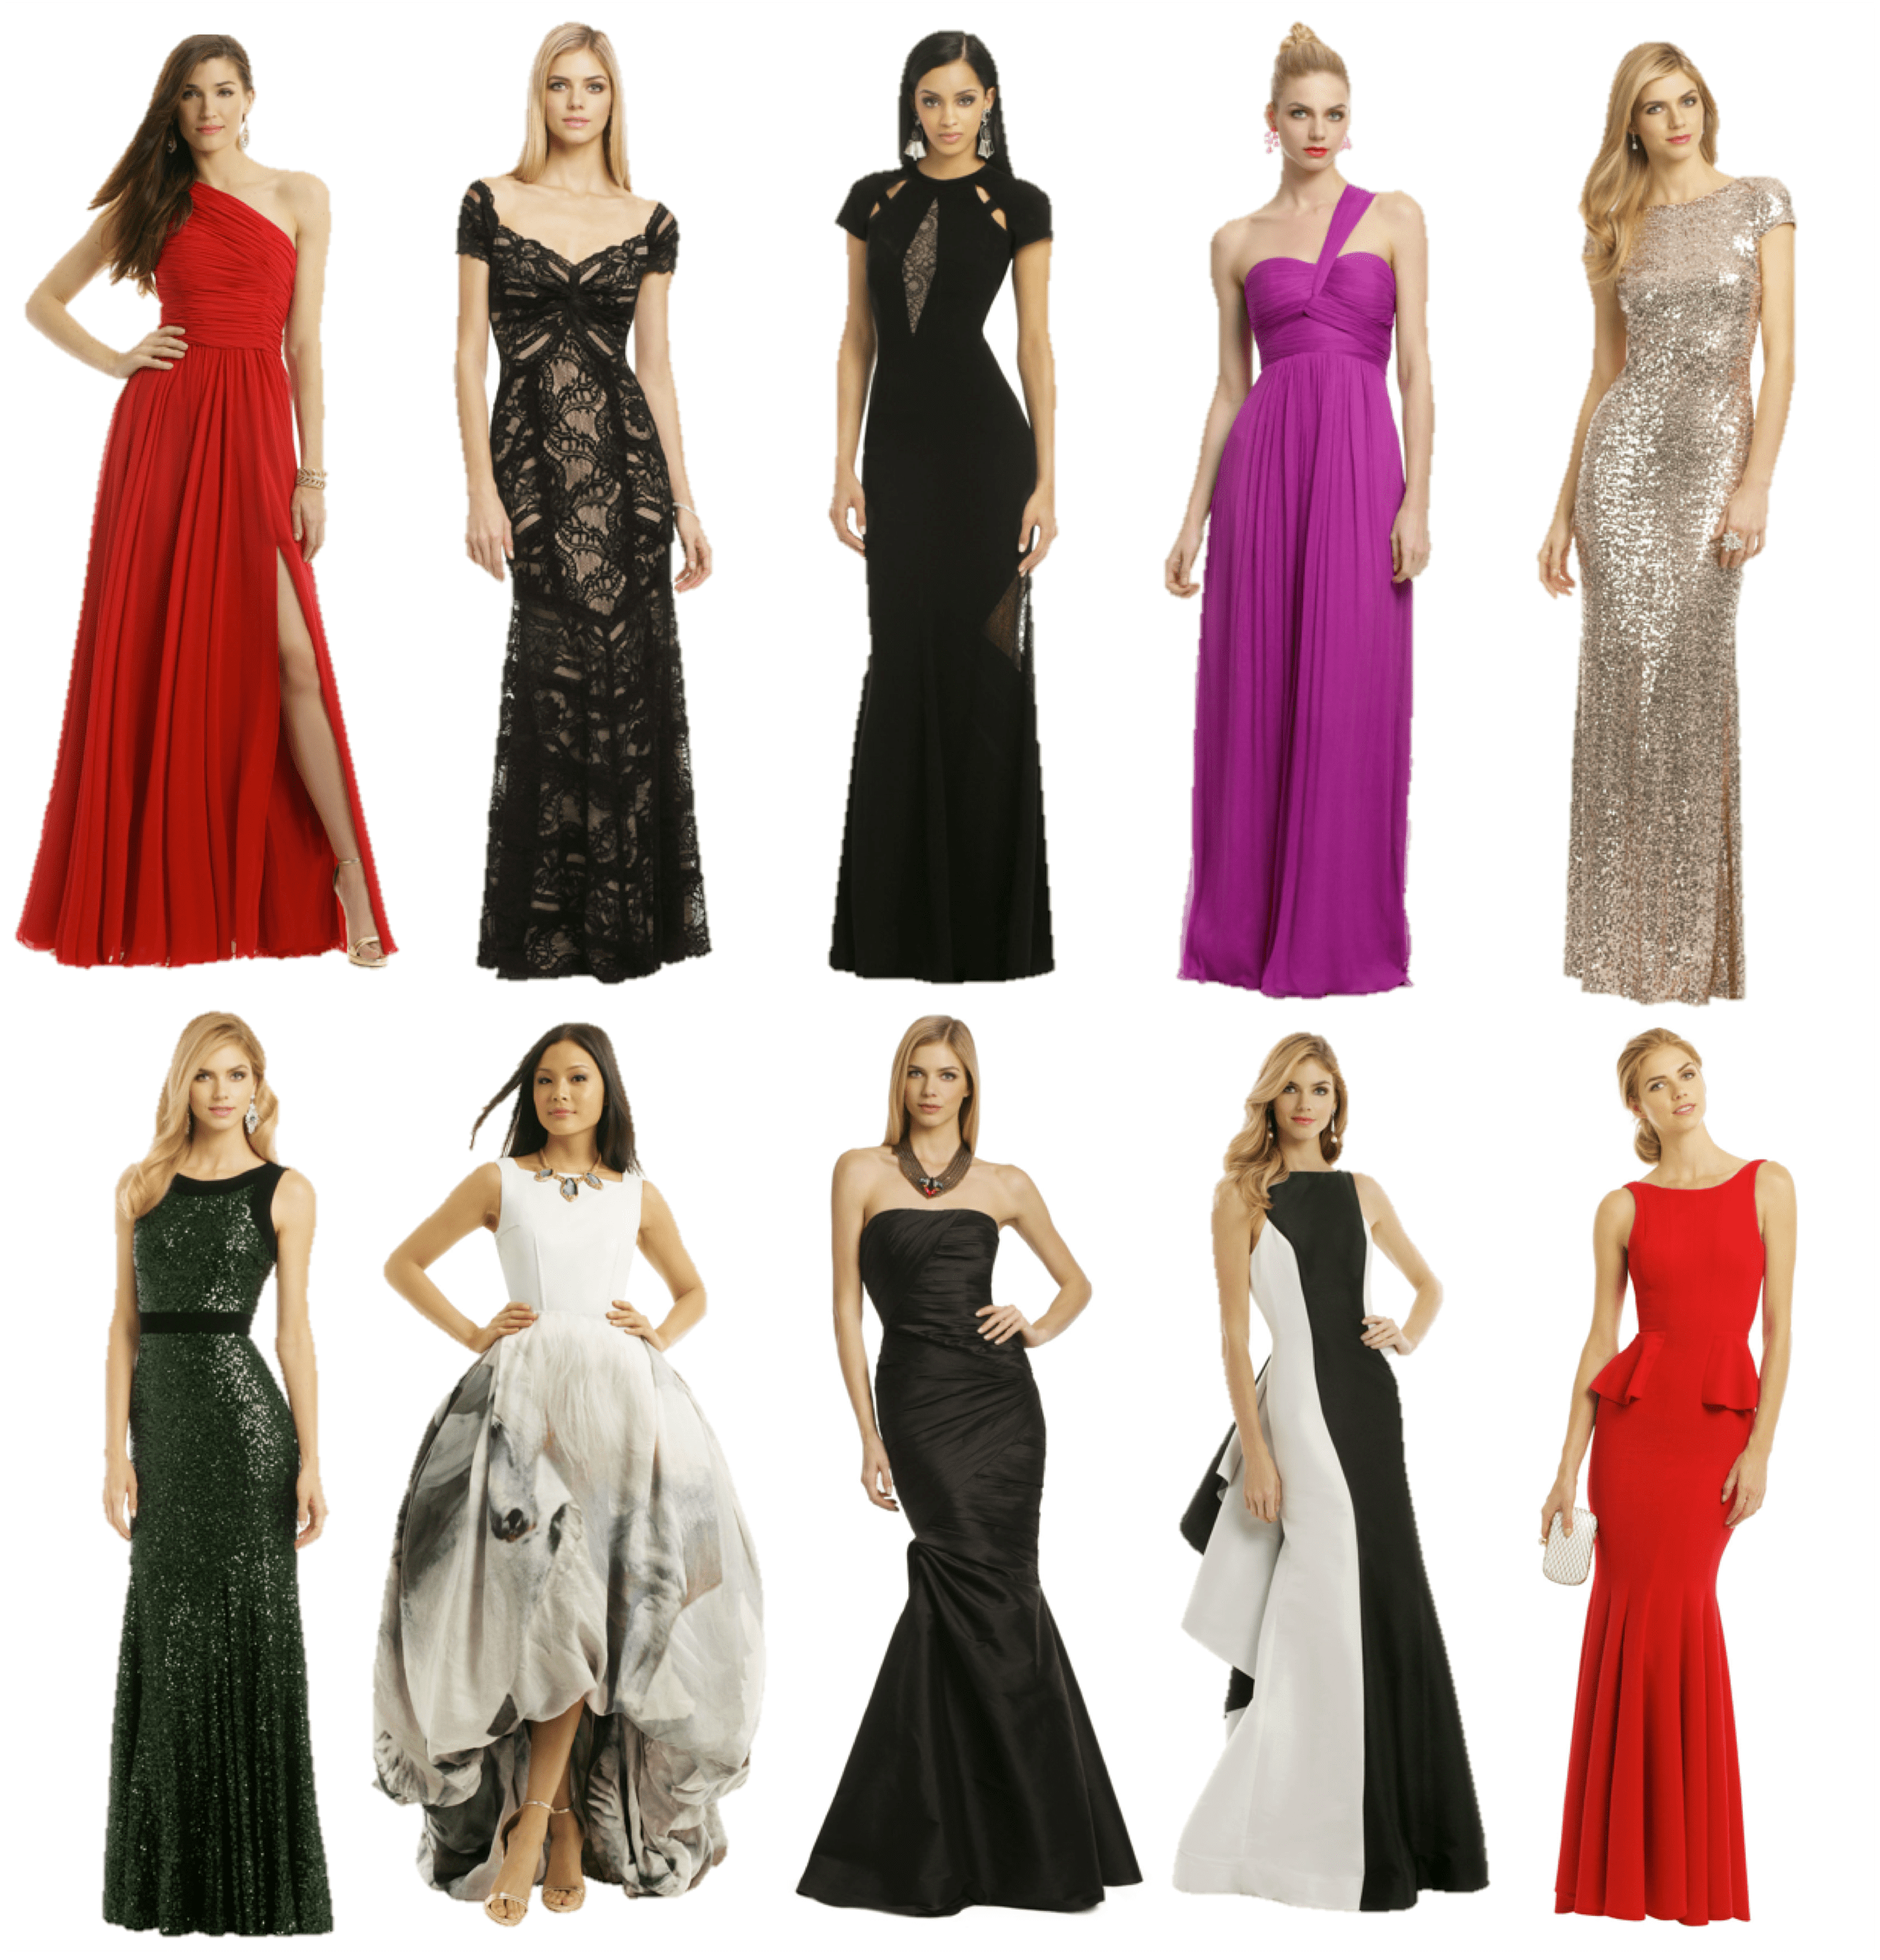 Rent the Runway: Prom Gowns | According to Yanni D